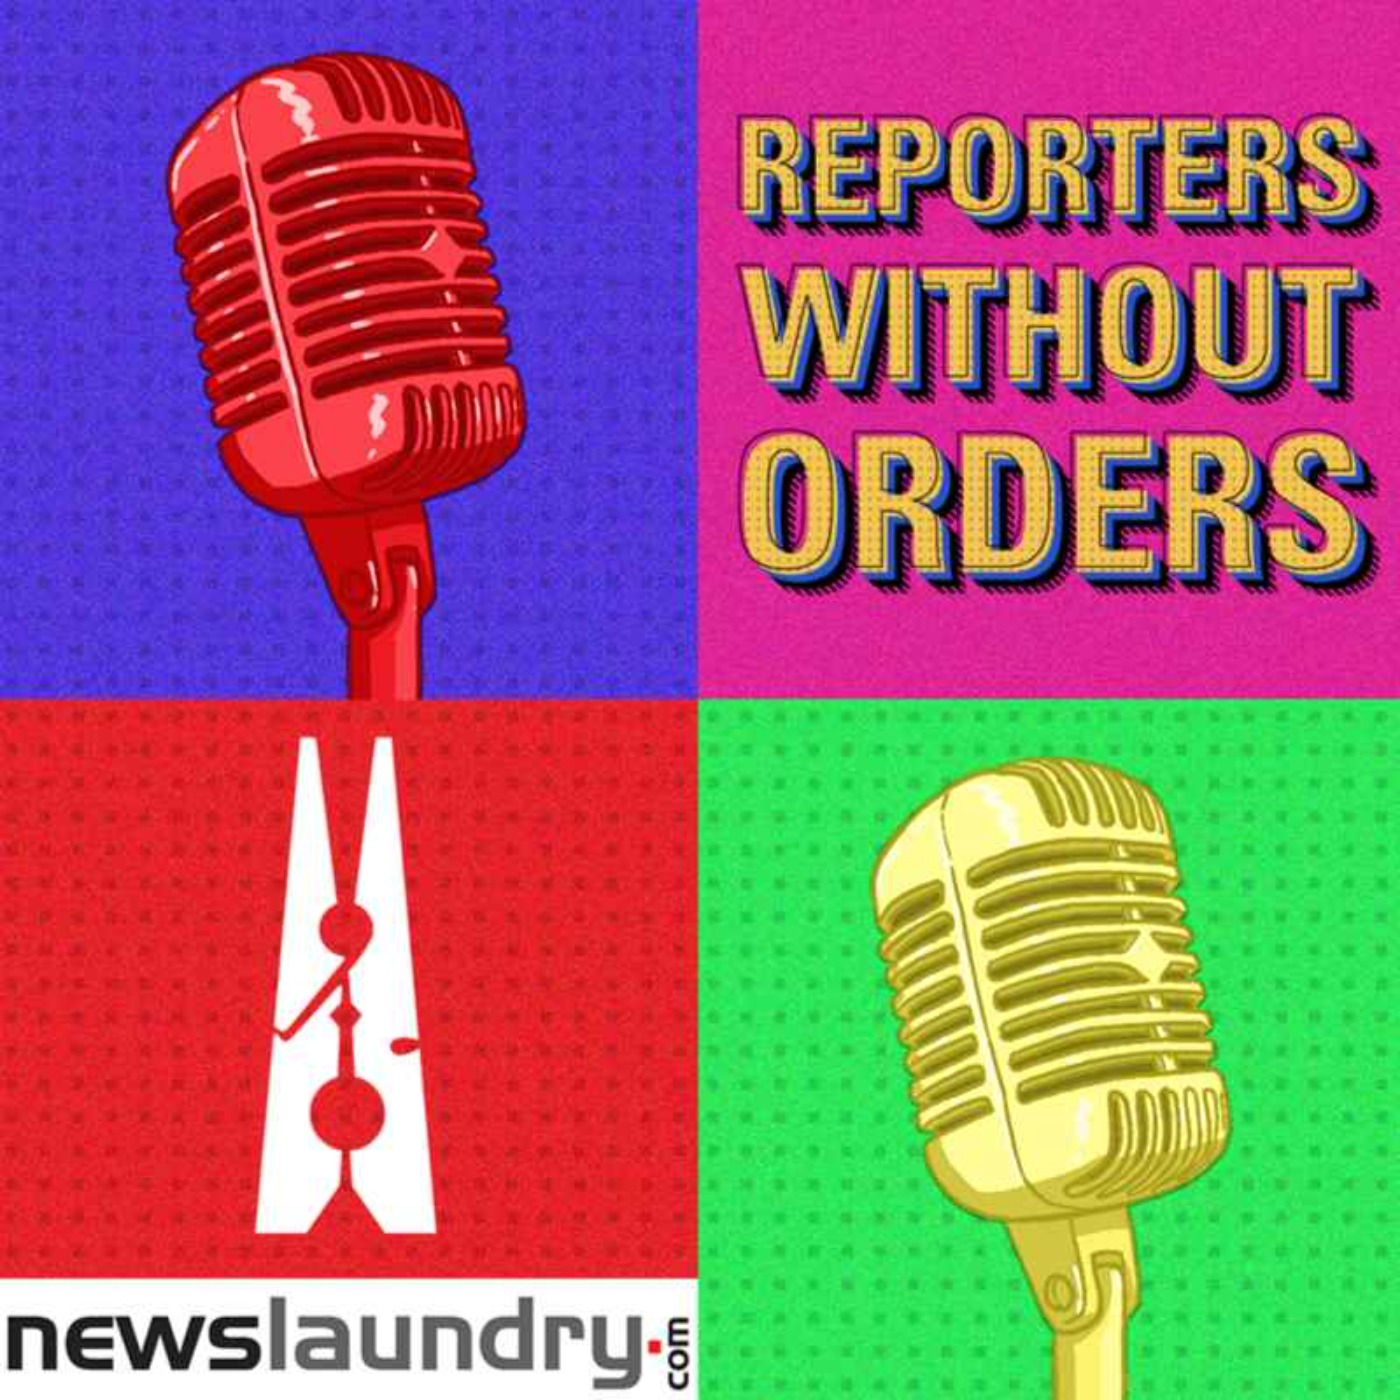 Reporters Without Orders Ep 147: 'Love jihad' and Uttar Pradesh's anti-conversion law